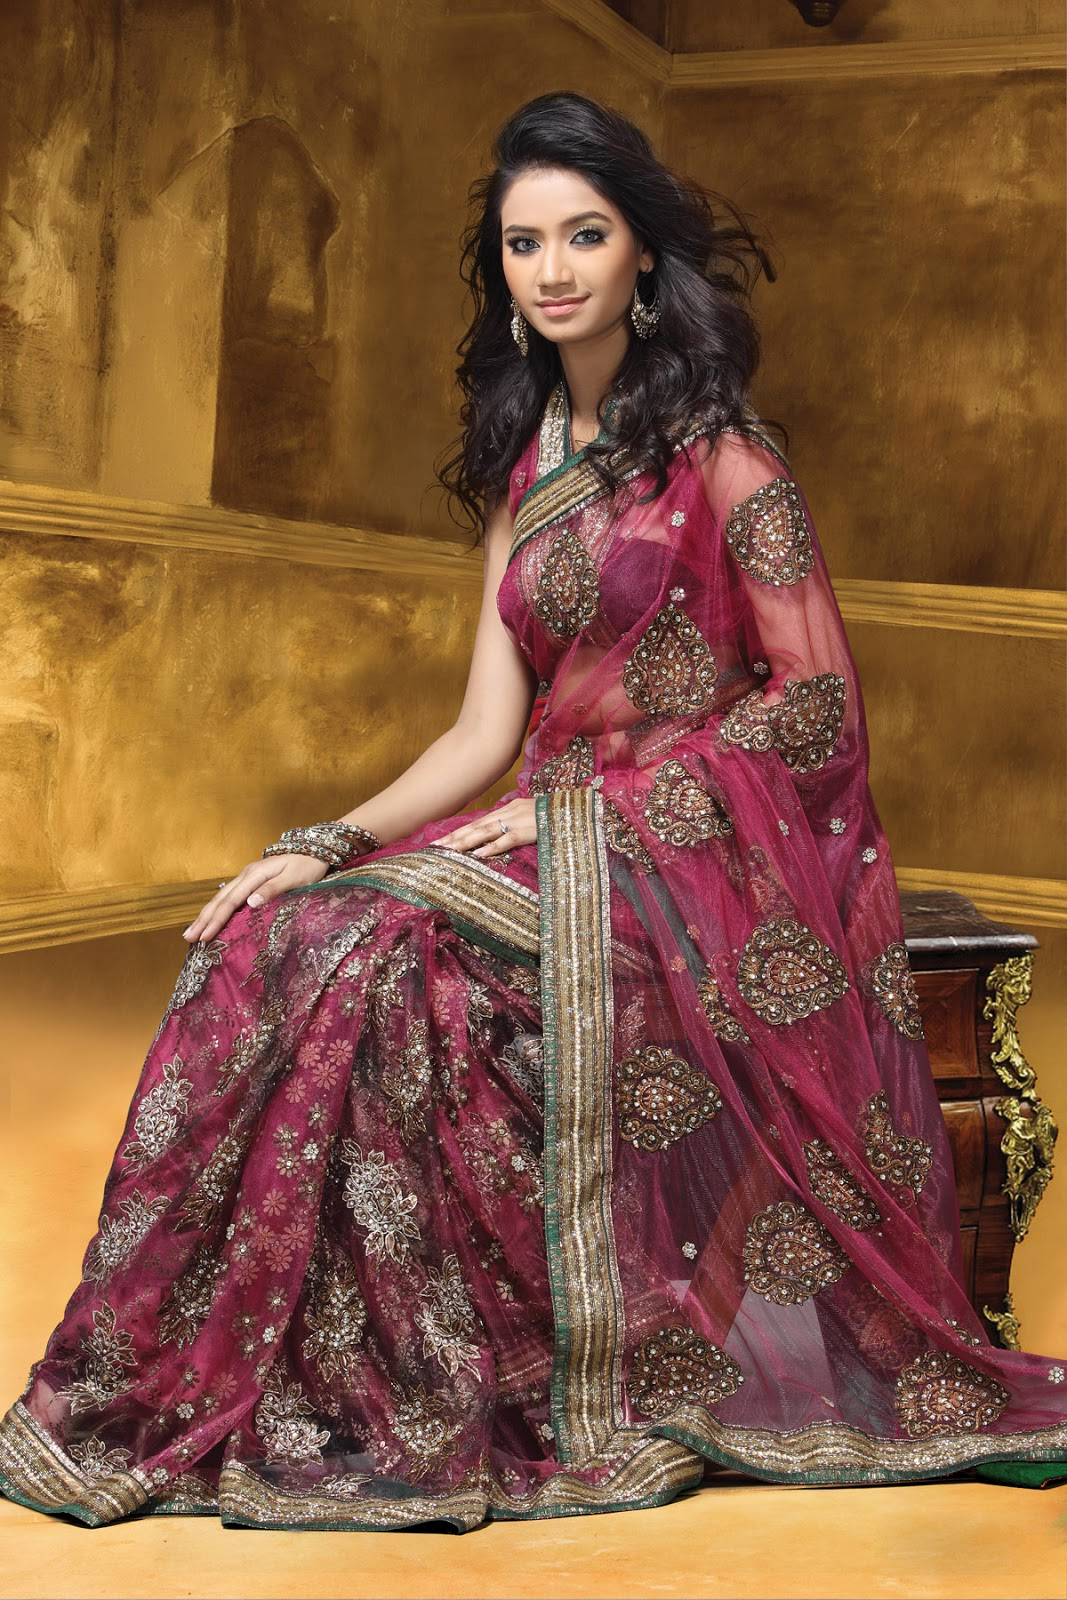 Women Fashion: Indian Bridal Sarees For Women